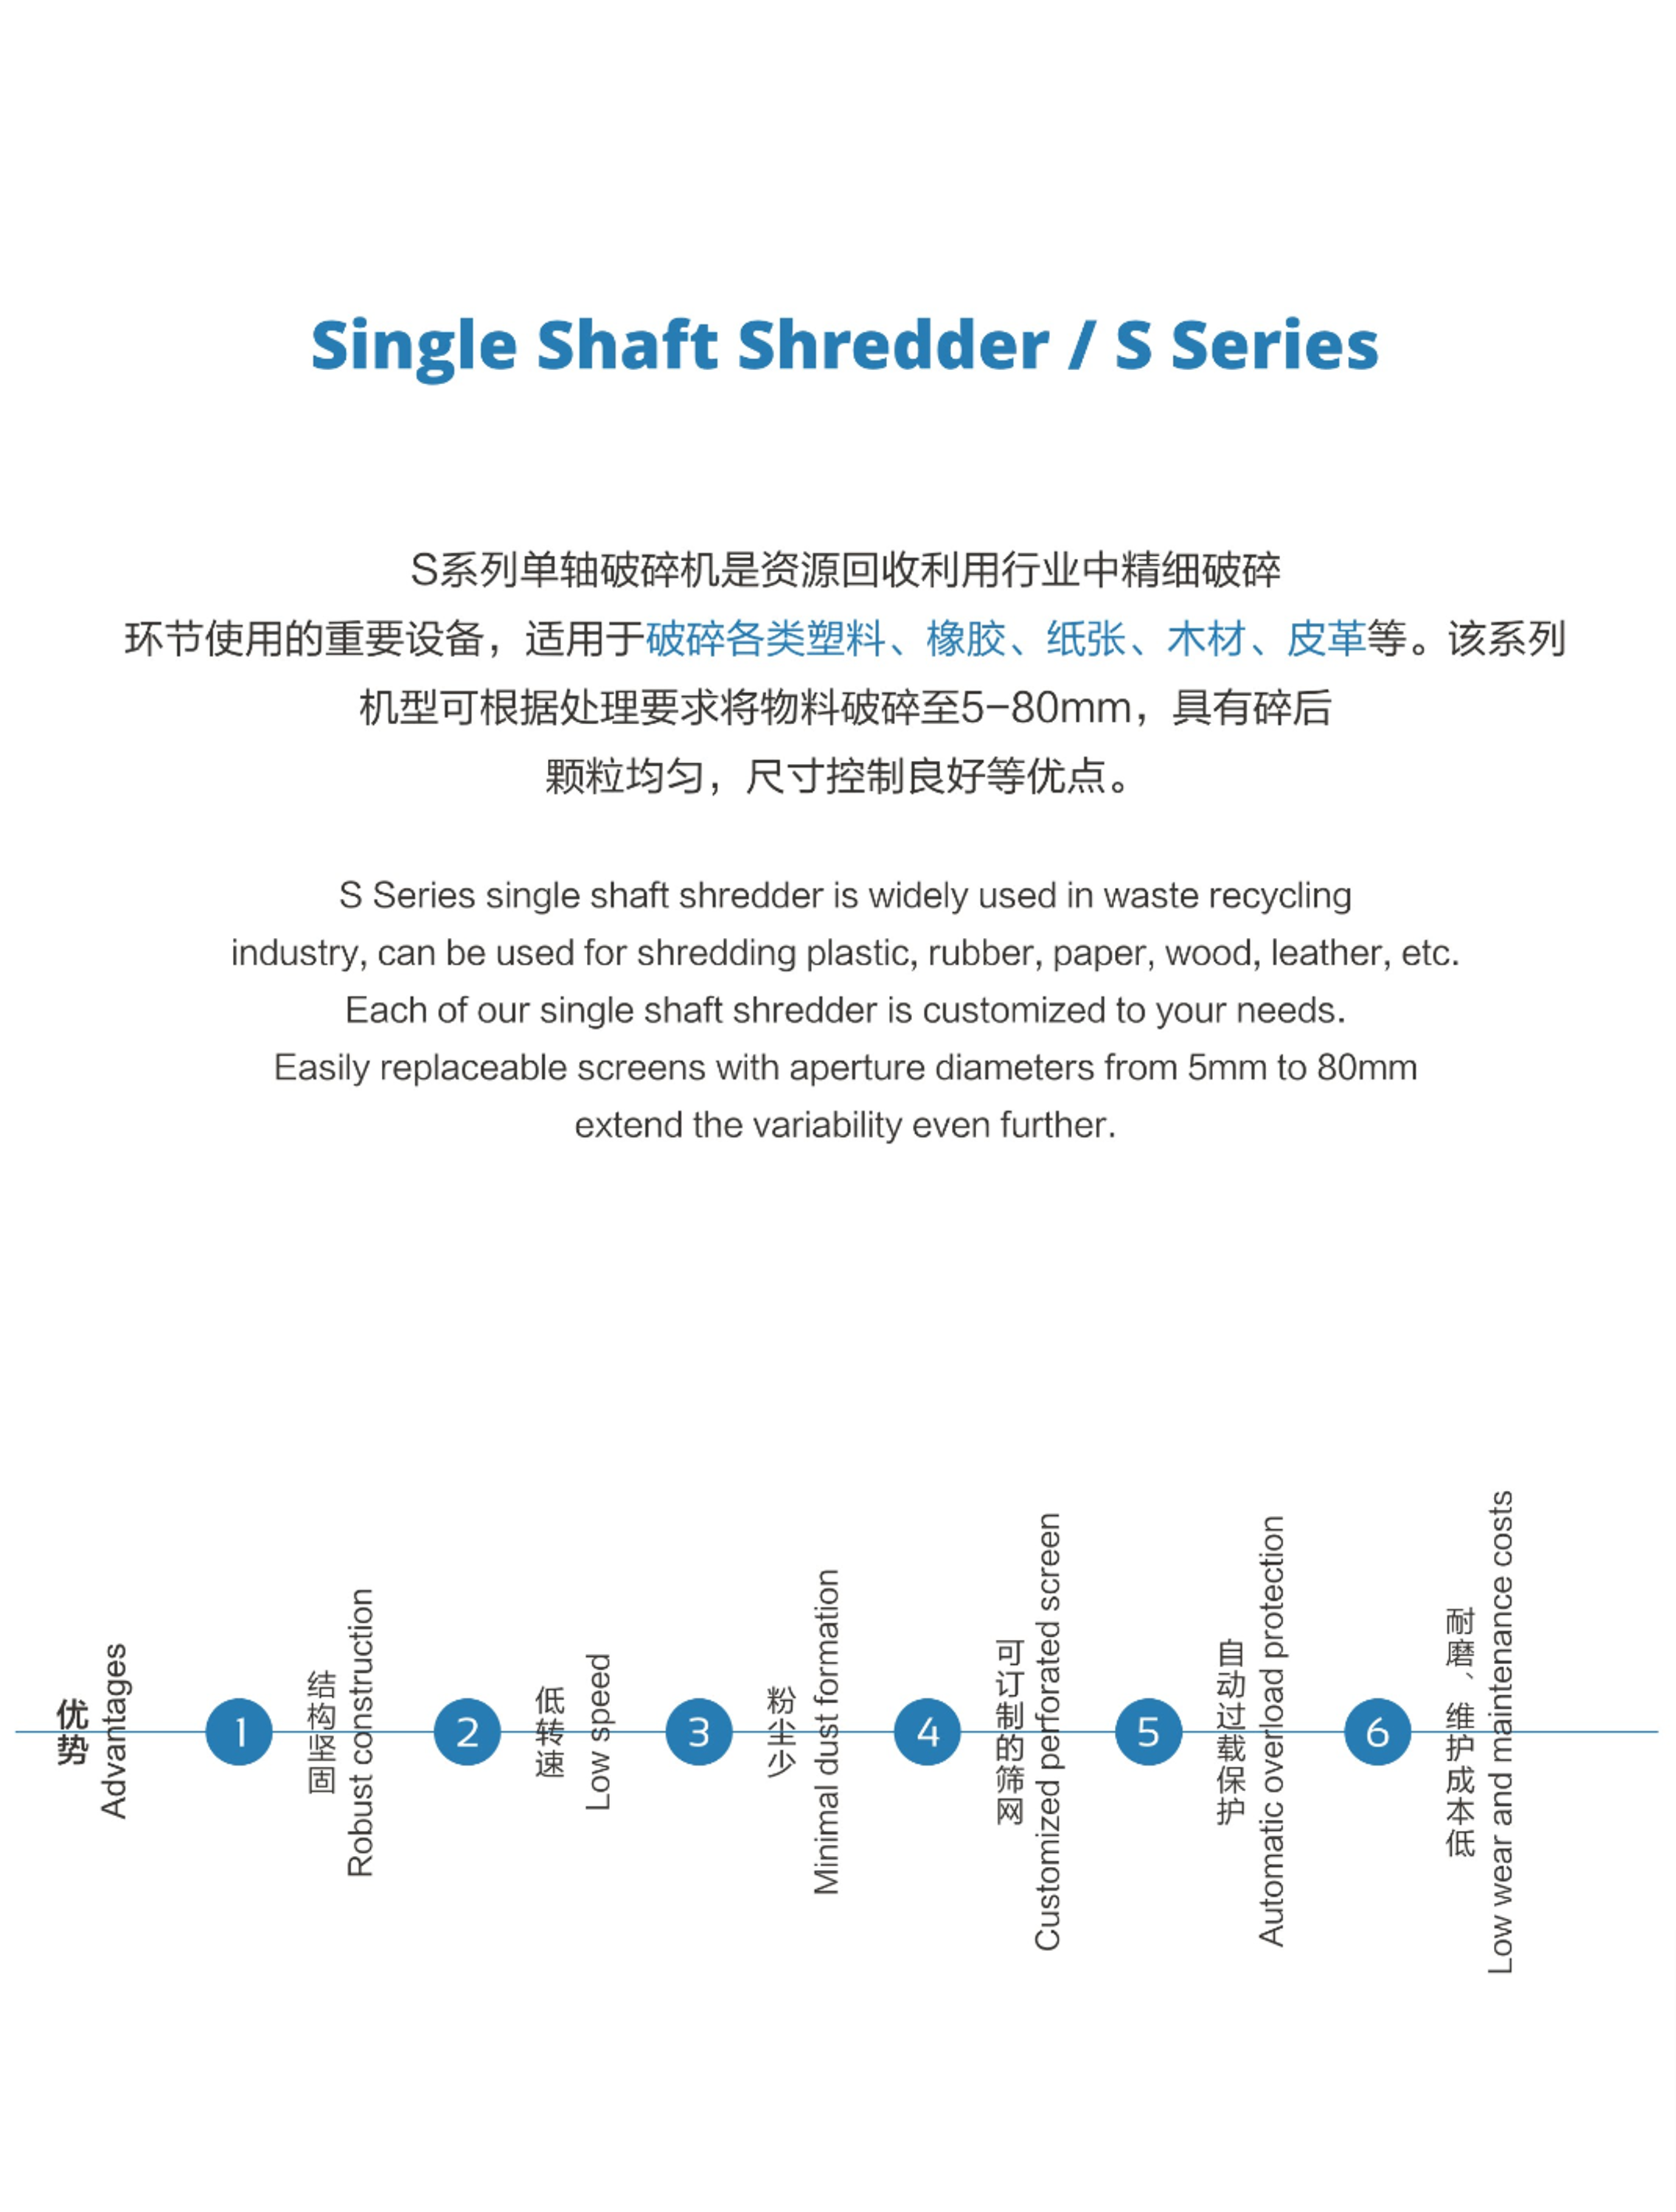 S1200 Single Shaft Shredder